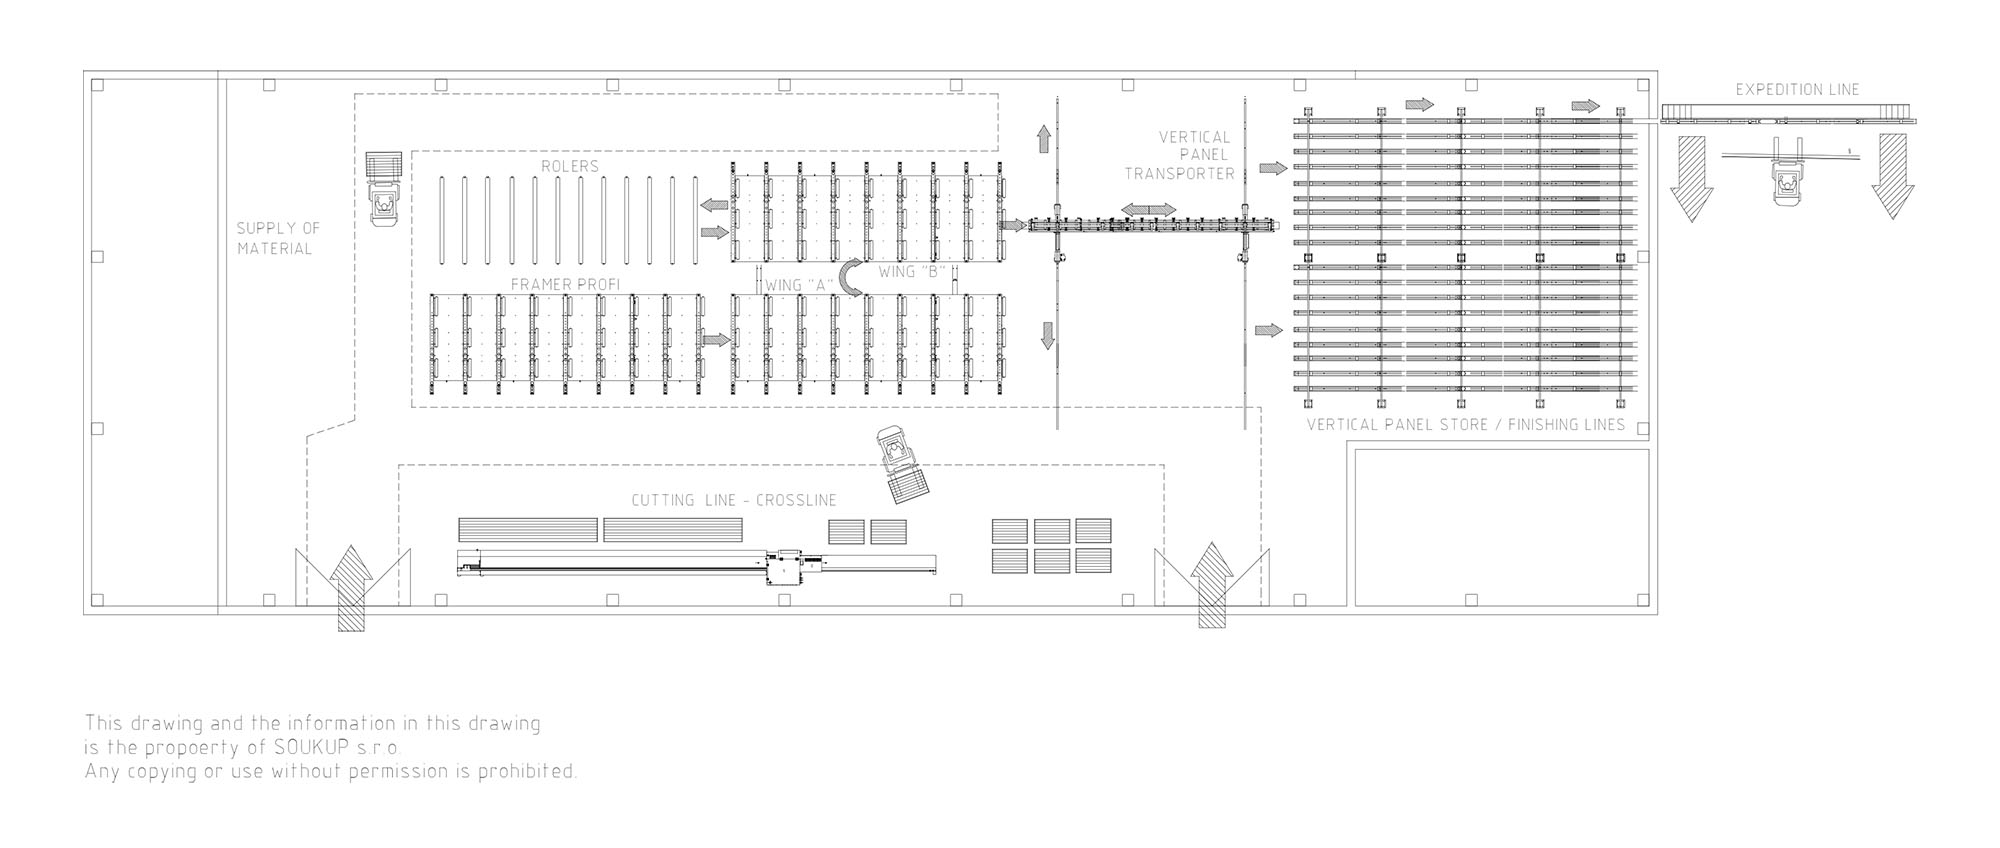 Example Offsite Construction Manufacturing Plant Layout by Soukup America